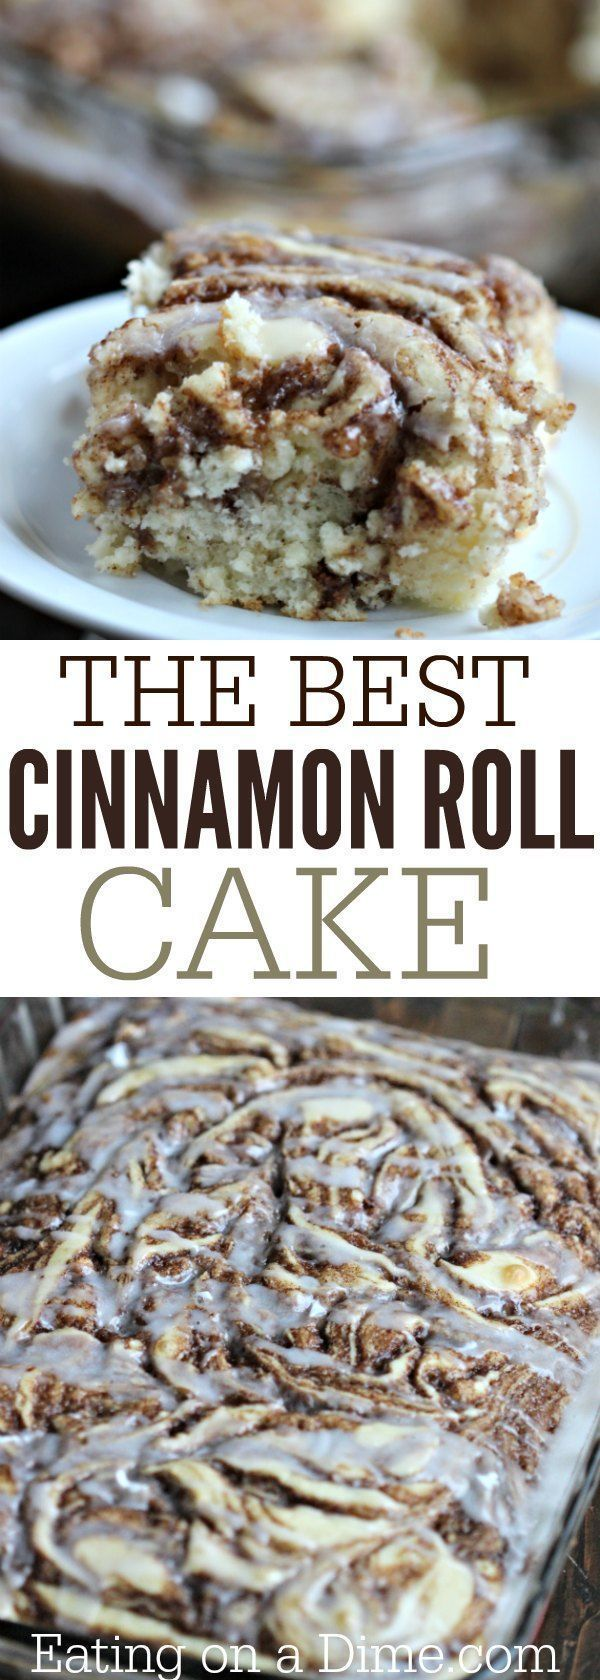 Here is a fun twist on a coffee cake recipe. This easy cinnamon roll cake recipe is the best. Get the taste of homemade cinnamon rolls without all the work. #cakebaking